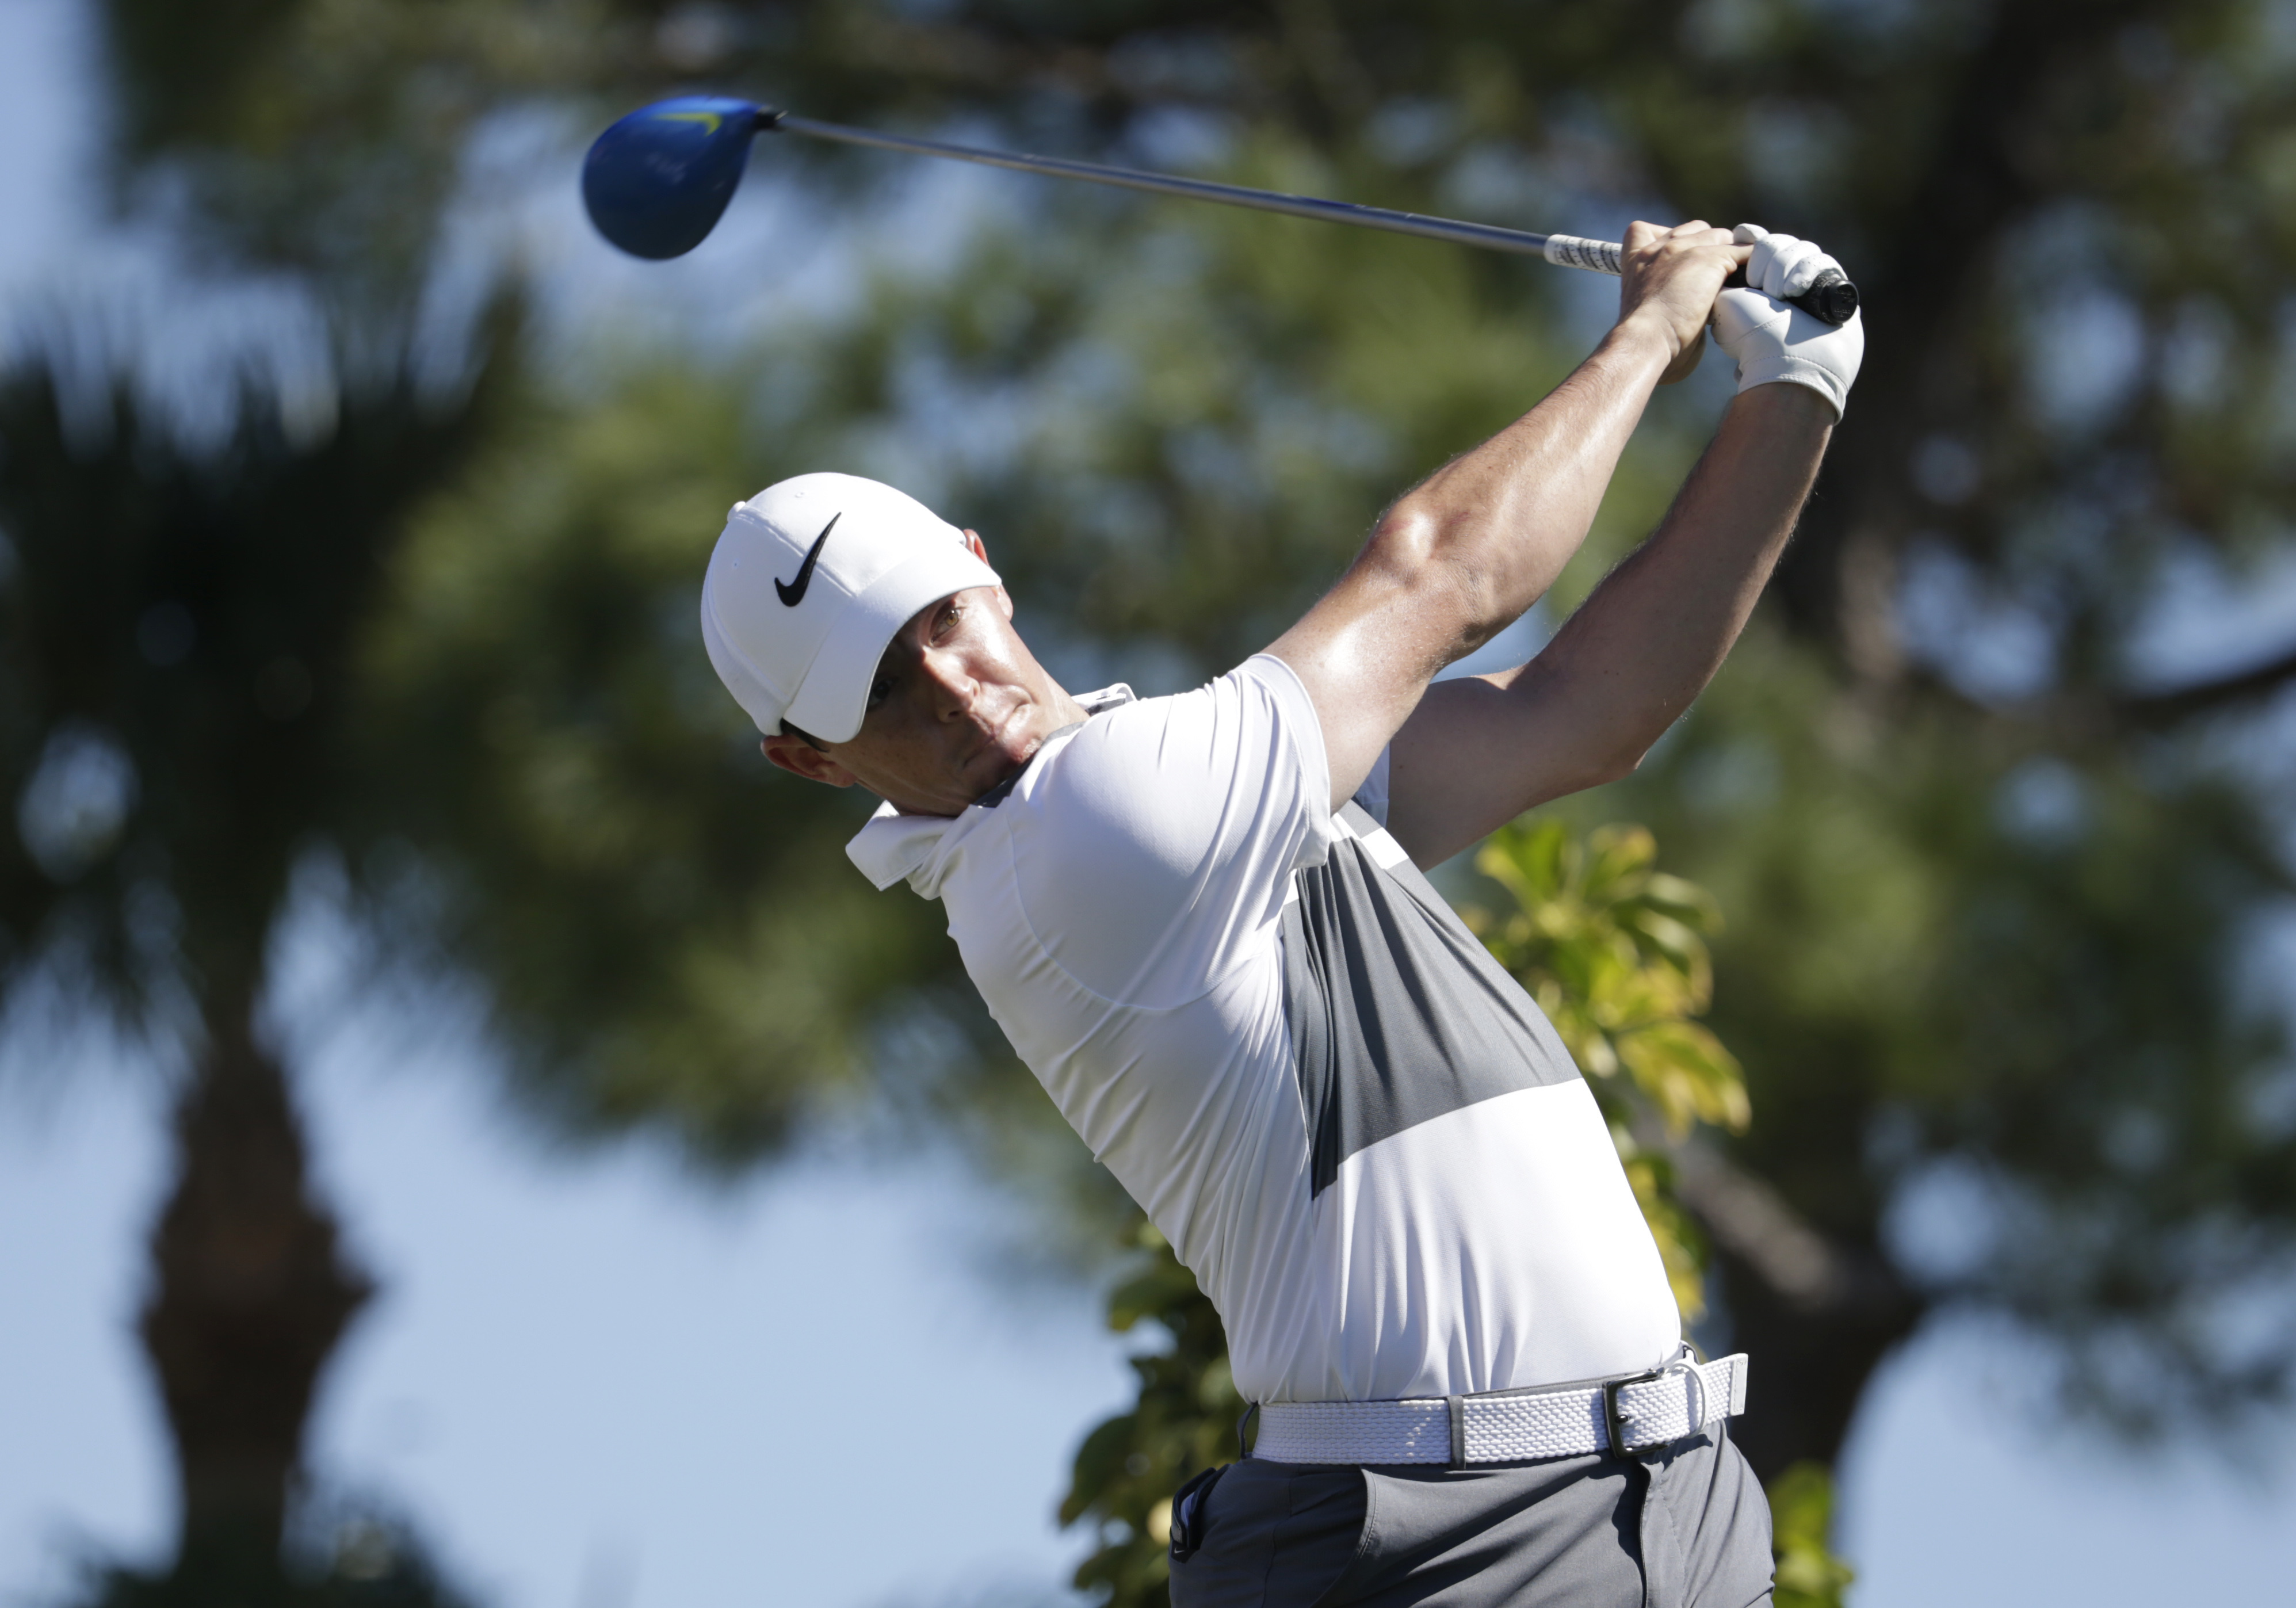 Rory McIlroy, of Northern Ireland, tees off on the fourth hole during the first round of the Honda Classic golf tournament, Thursday, Feb. 25, 2016, in Palm Beach Gardens, Fla. (AP Photo/Lynne